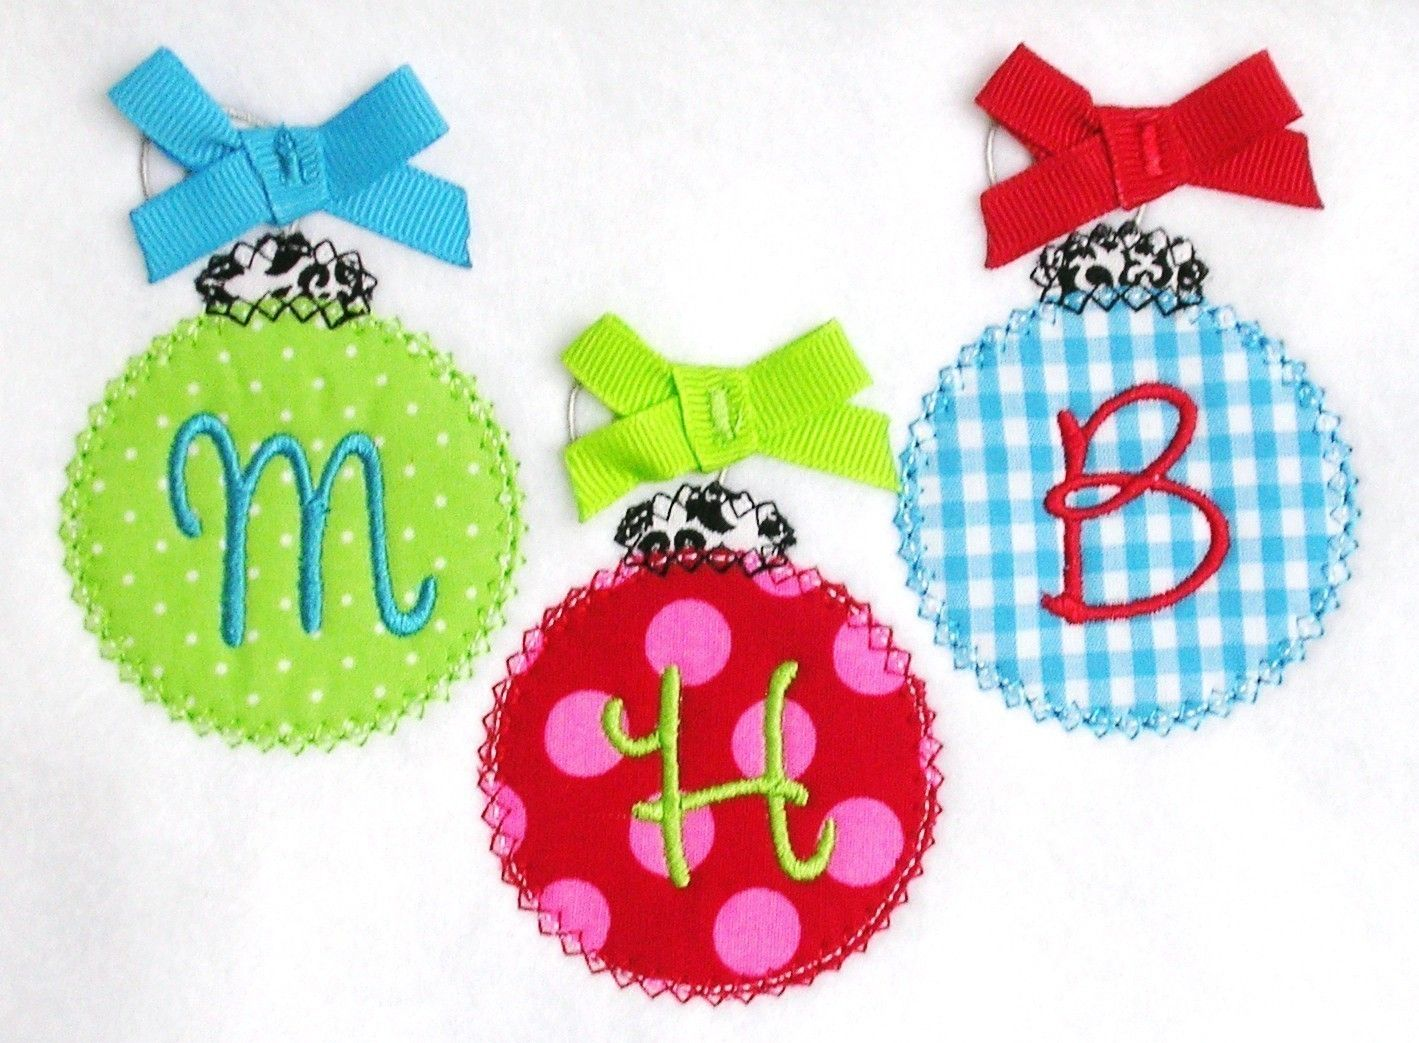 christmas applique designs sara colby this might be cute on one of ceces shirt - Christmas Applique Designs